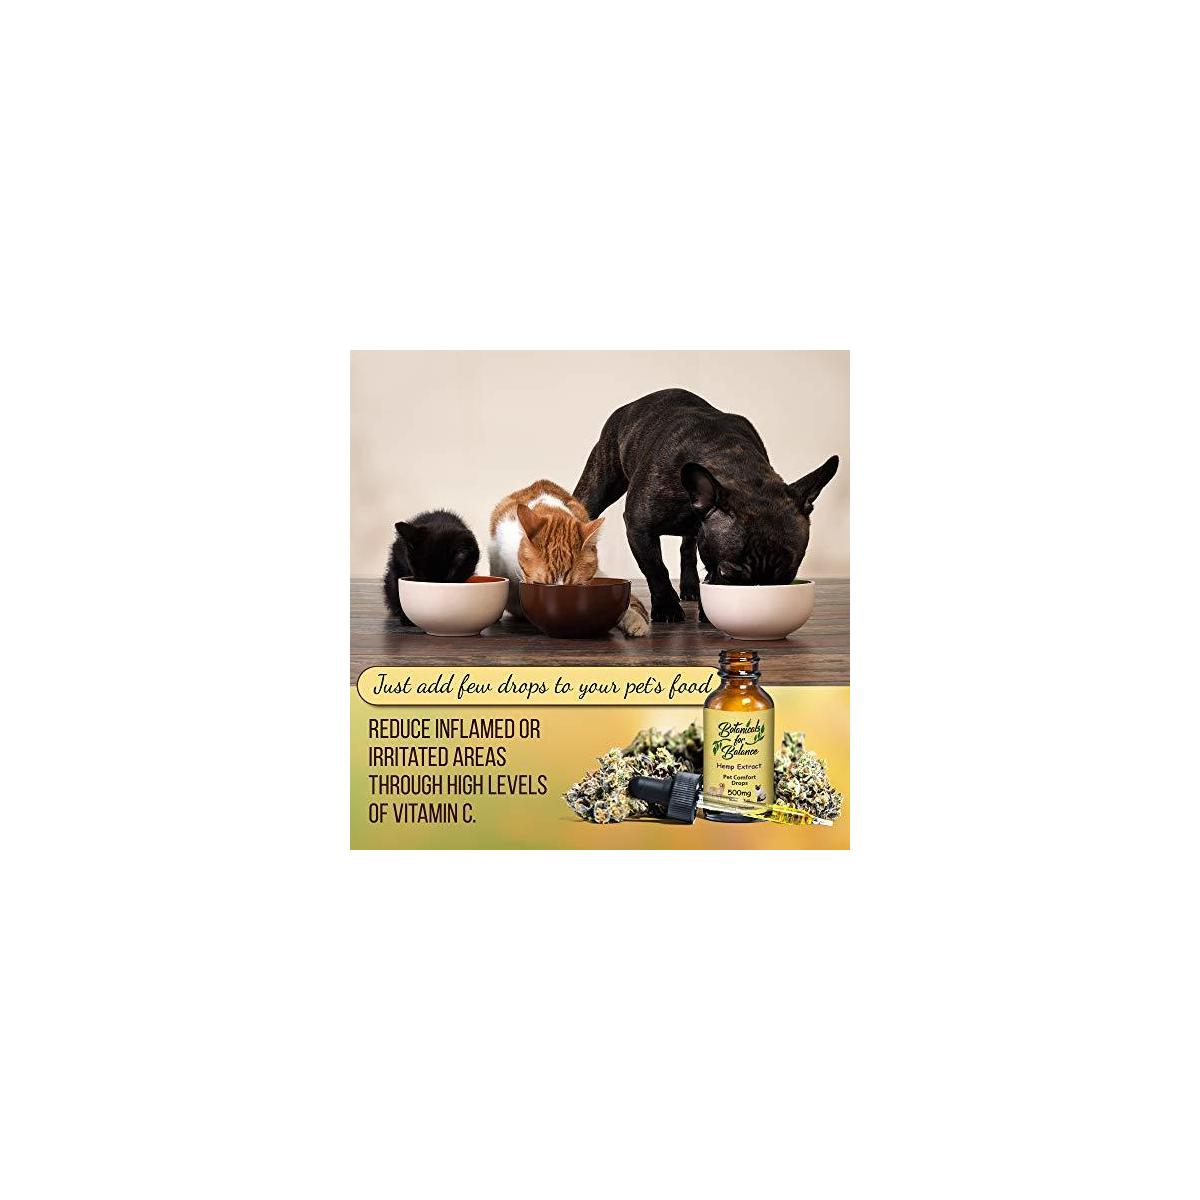 Botanicals for Balance Pet Drops Hemp Extract Supplements for Stress, Anxiety, Support Joints, Immune Function, Overall Wellness and Healthy Aging.